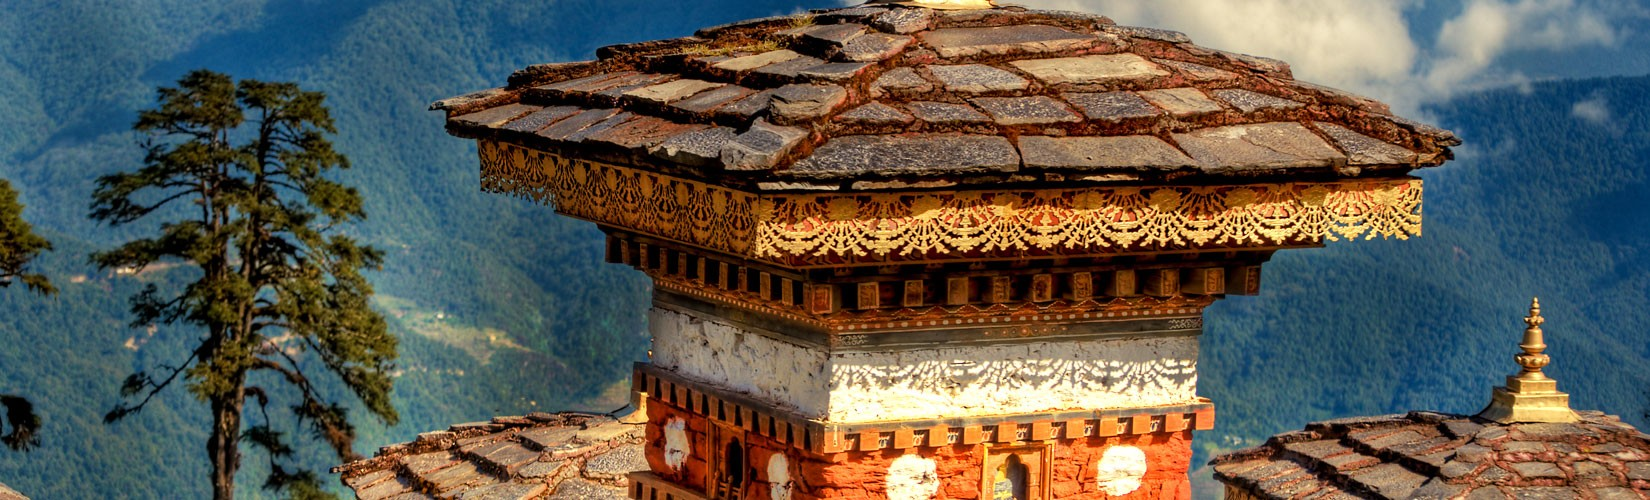 Bhutan Tour 4Nights 5Days, Bhutan Tour